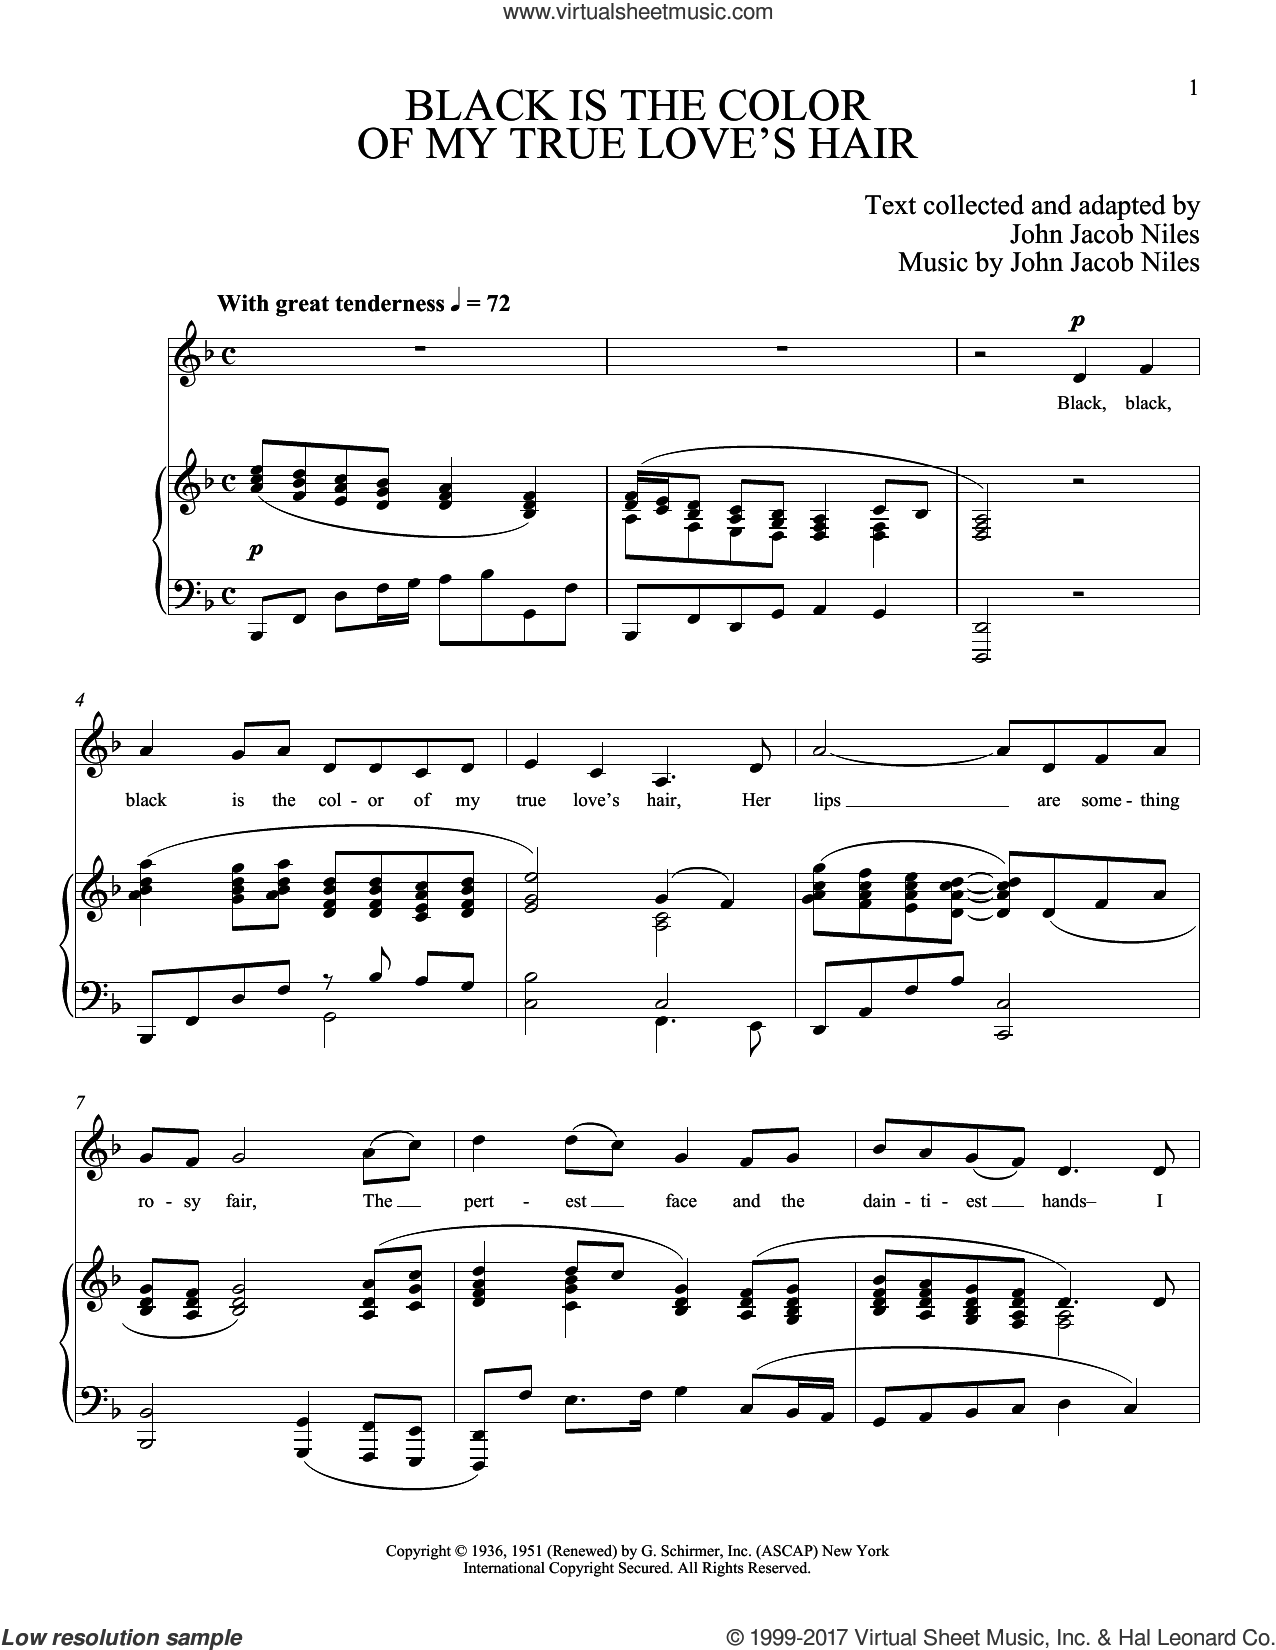 Black Is The Color Of My True Love's Hair sheet music for voice and piano by Joan Frey Boytim. Score Image Preview.